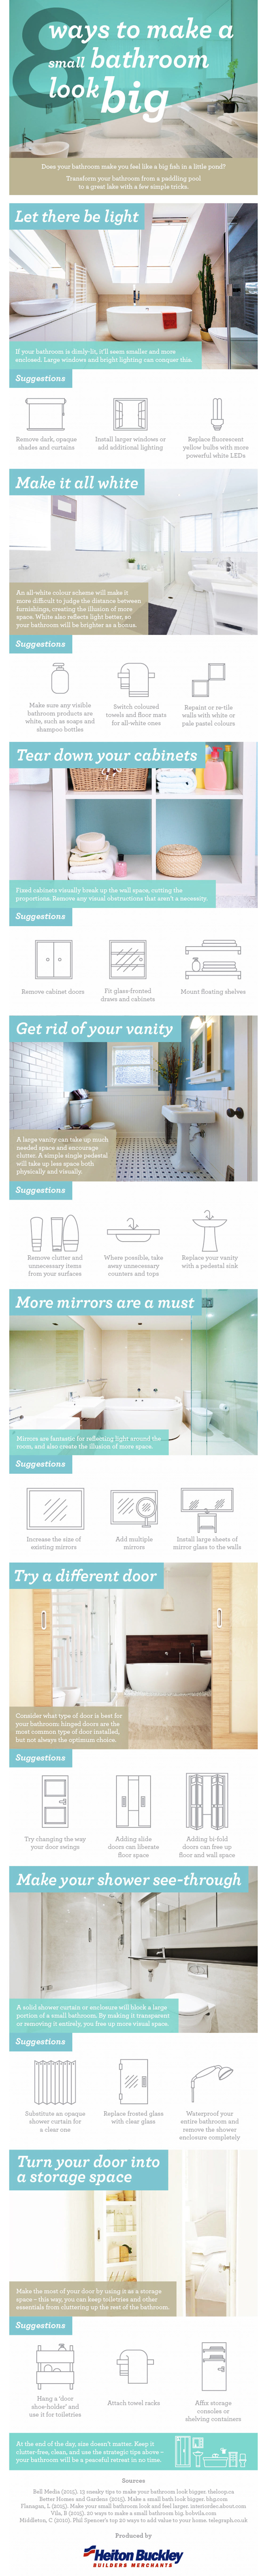 8 Tips to Make a Small Bathroom Look Bigger - Interior Design Infographic